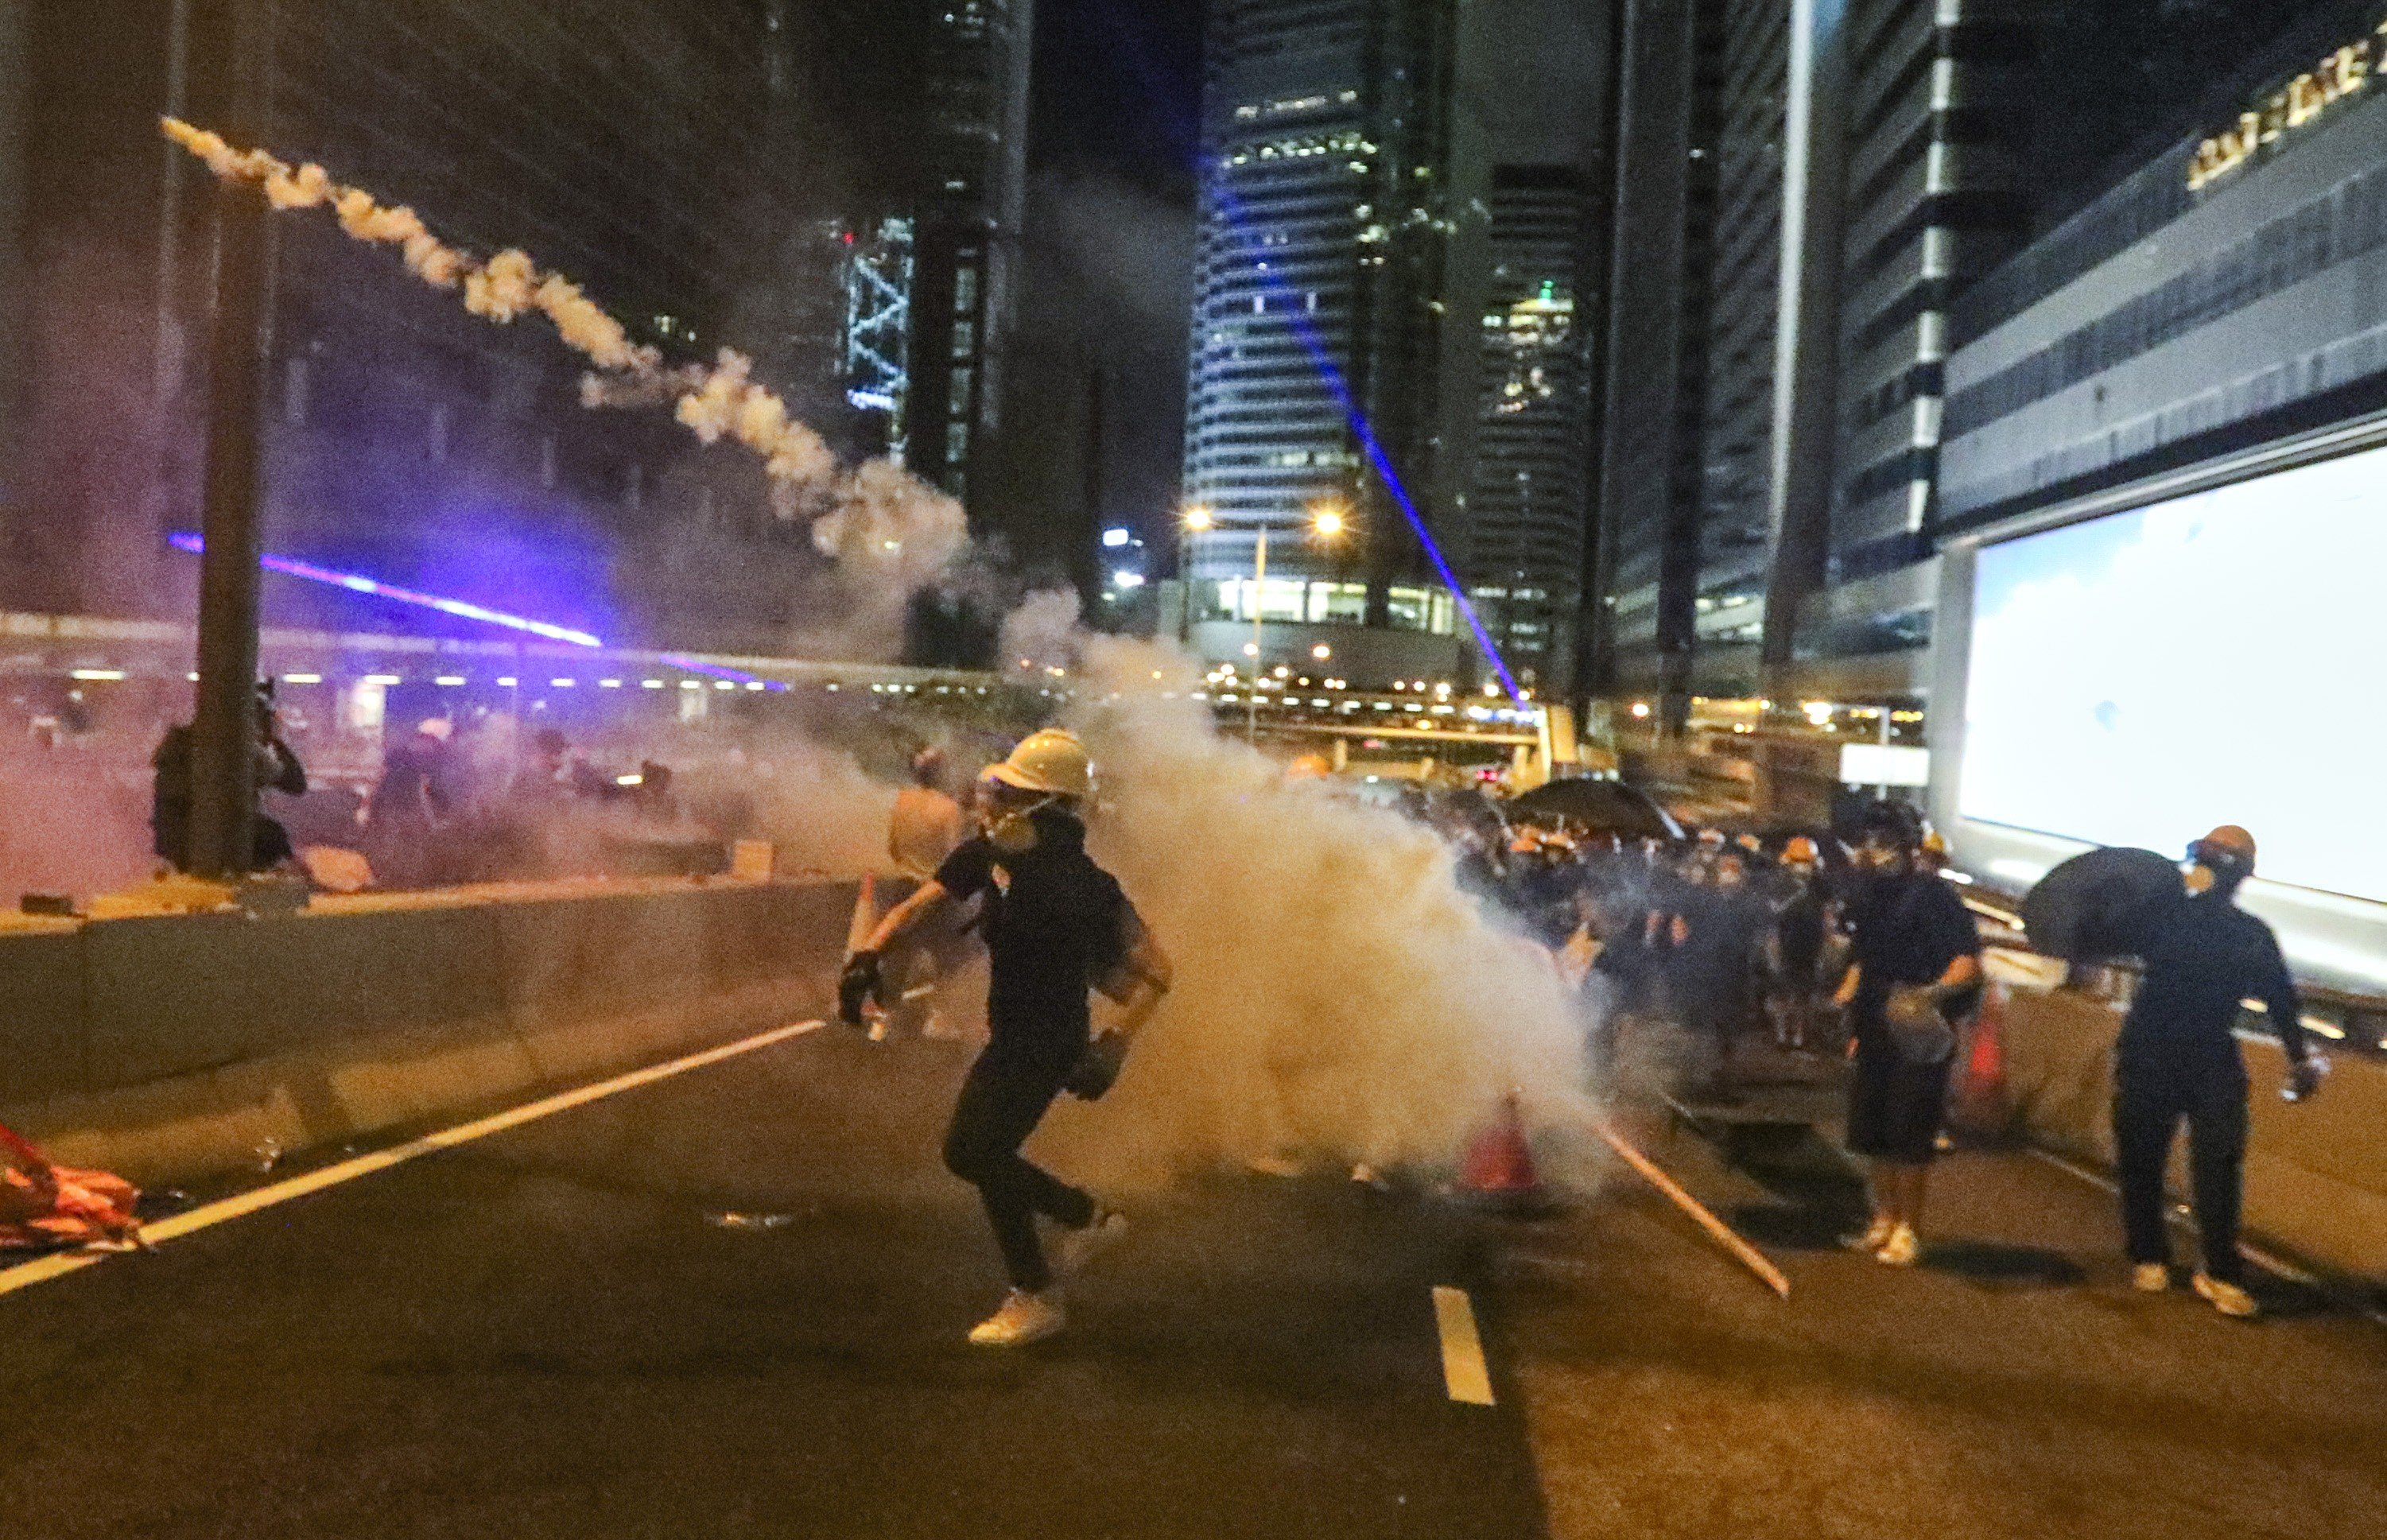 Police warn of more violence in Hong Kong protests after seizing